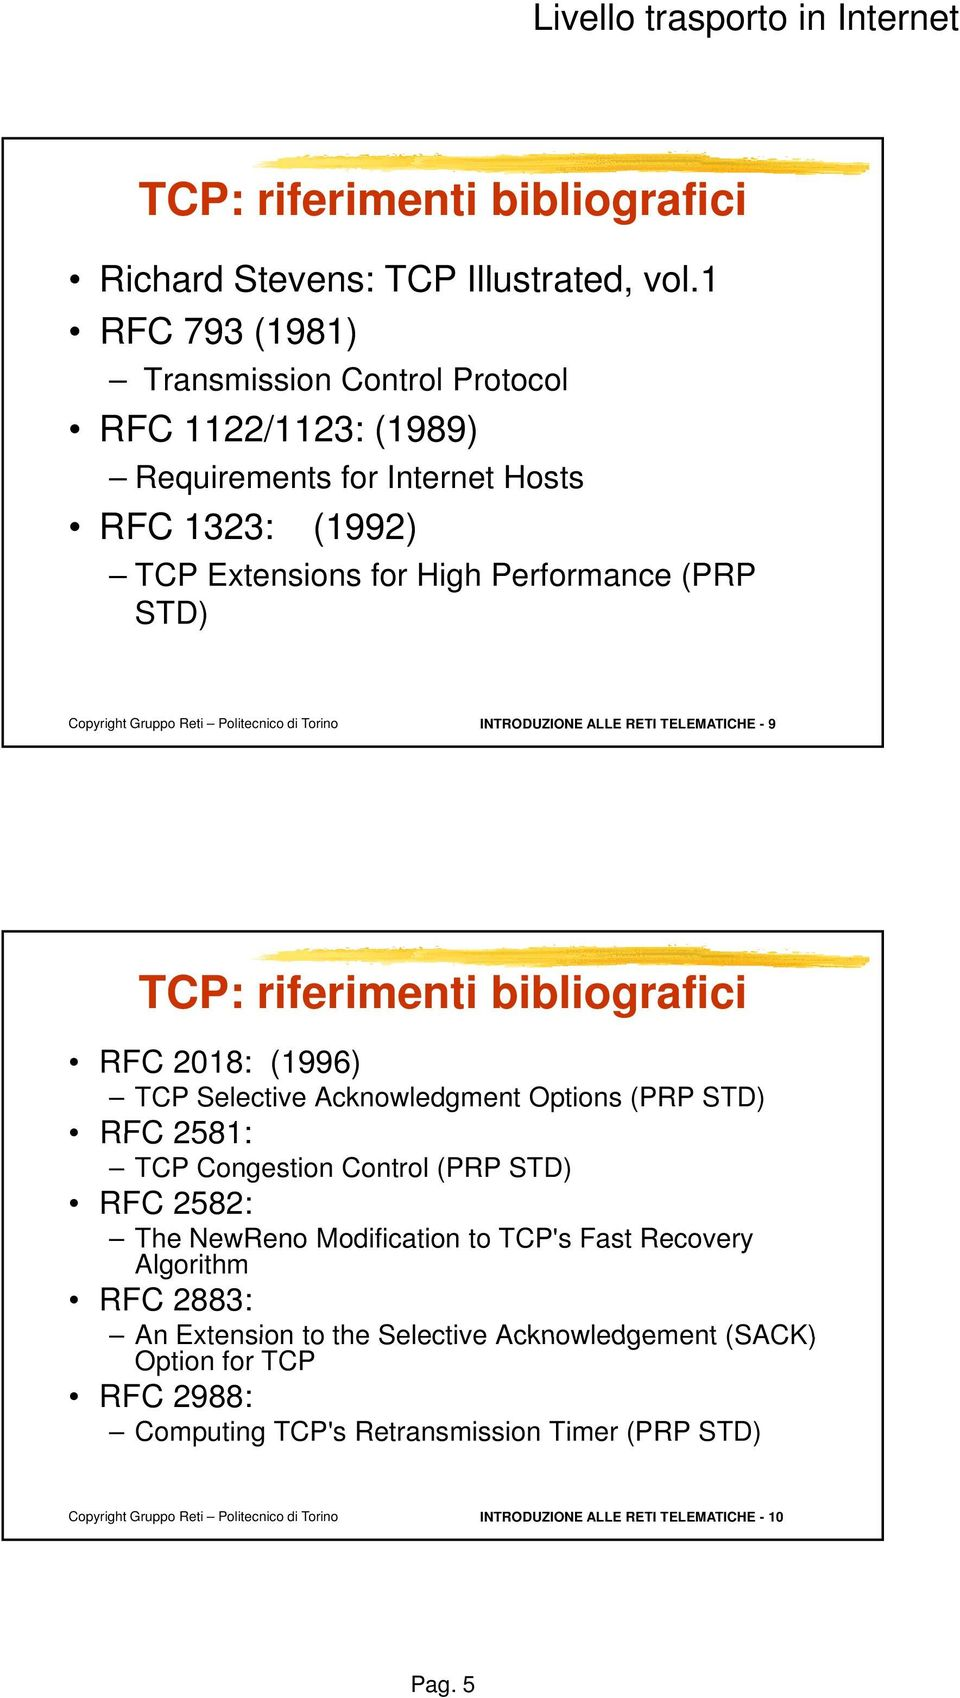 INTRODUZIONE ALLE RETI TELEMATICHE - 9 TCP: riferimenti bibliografici RFC 2018: (1996) TCP Selective Acknowledgment Options (PRP STD) RFC 2581: TCP Congestion